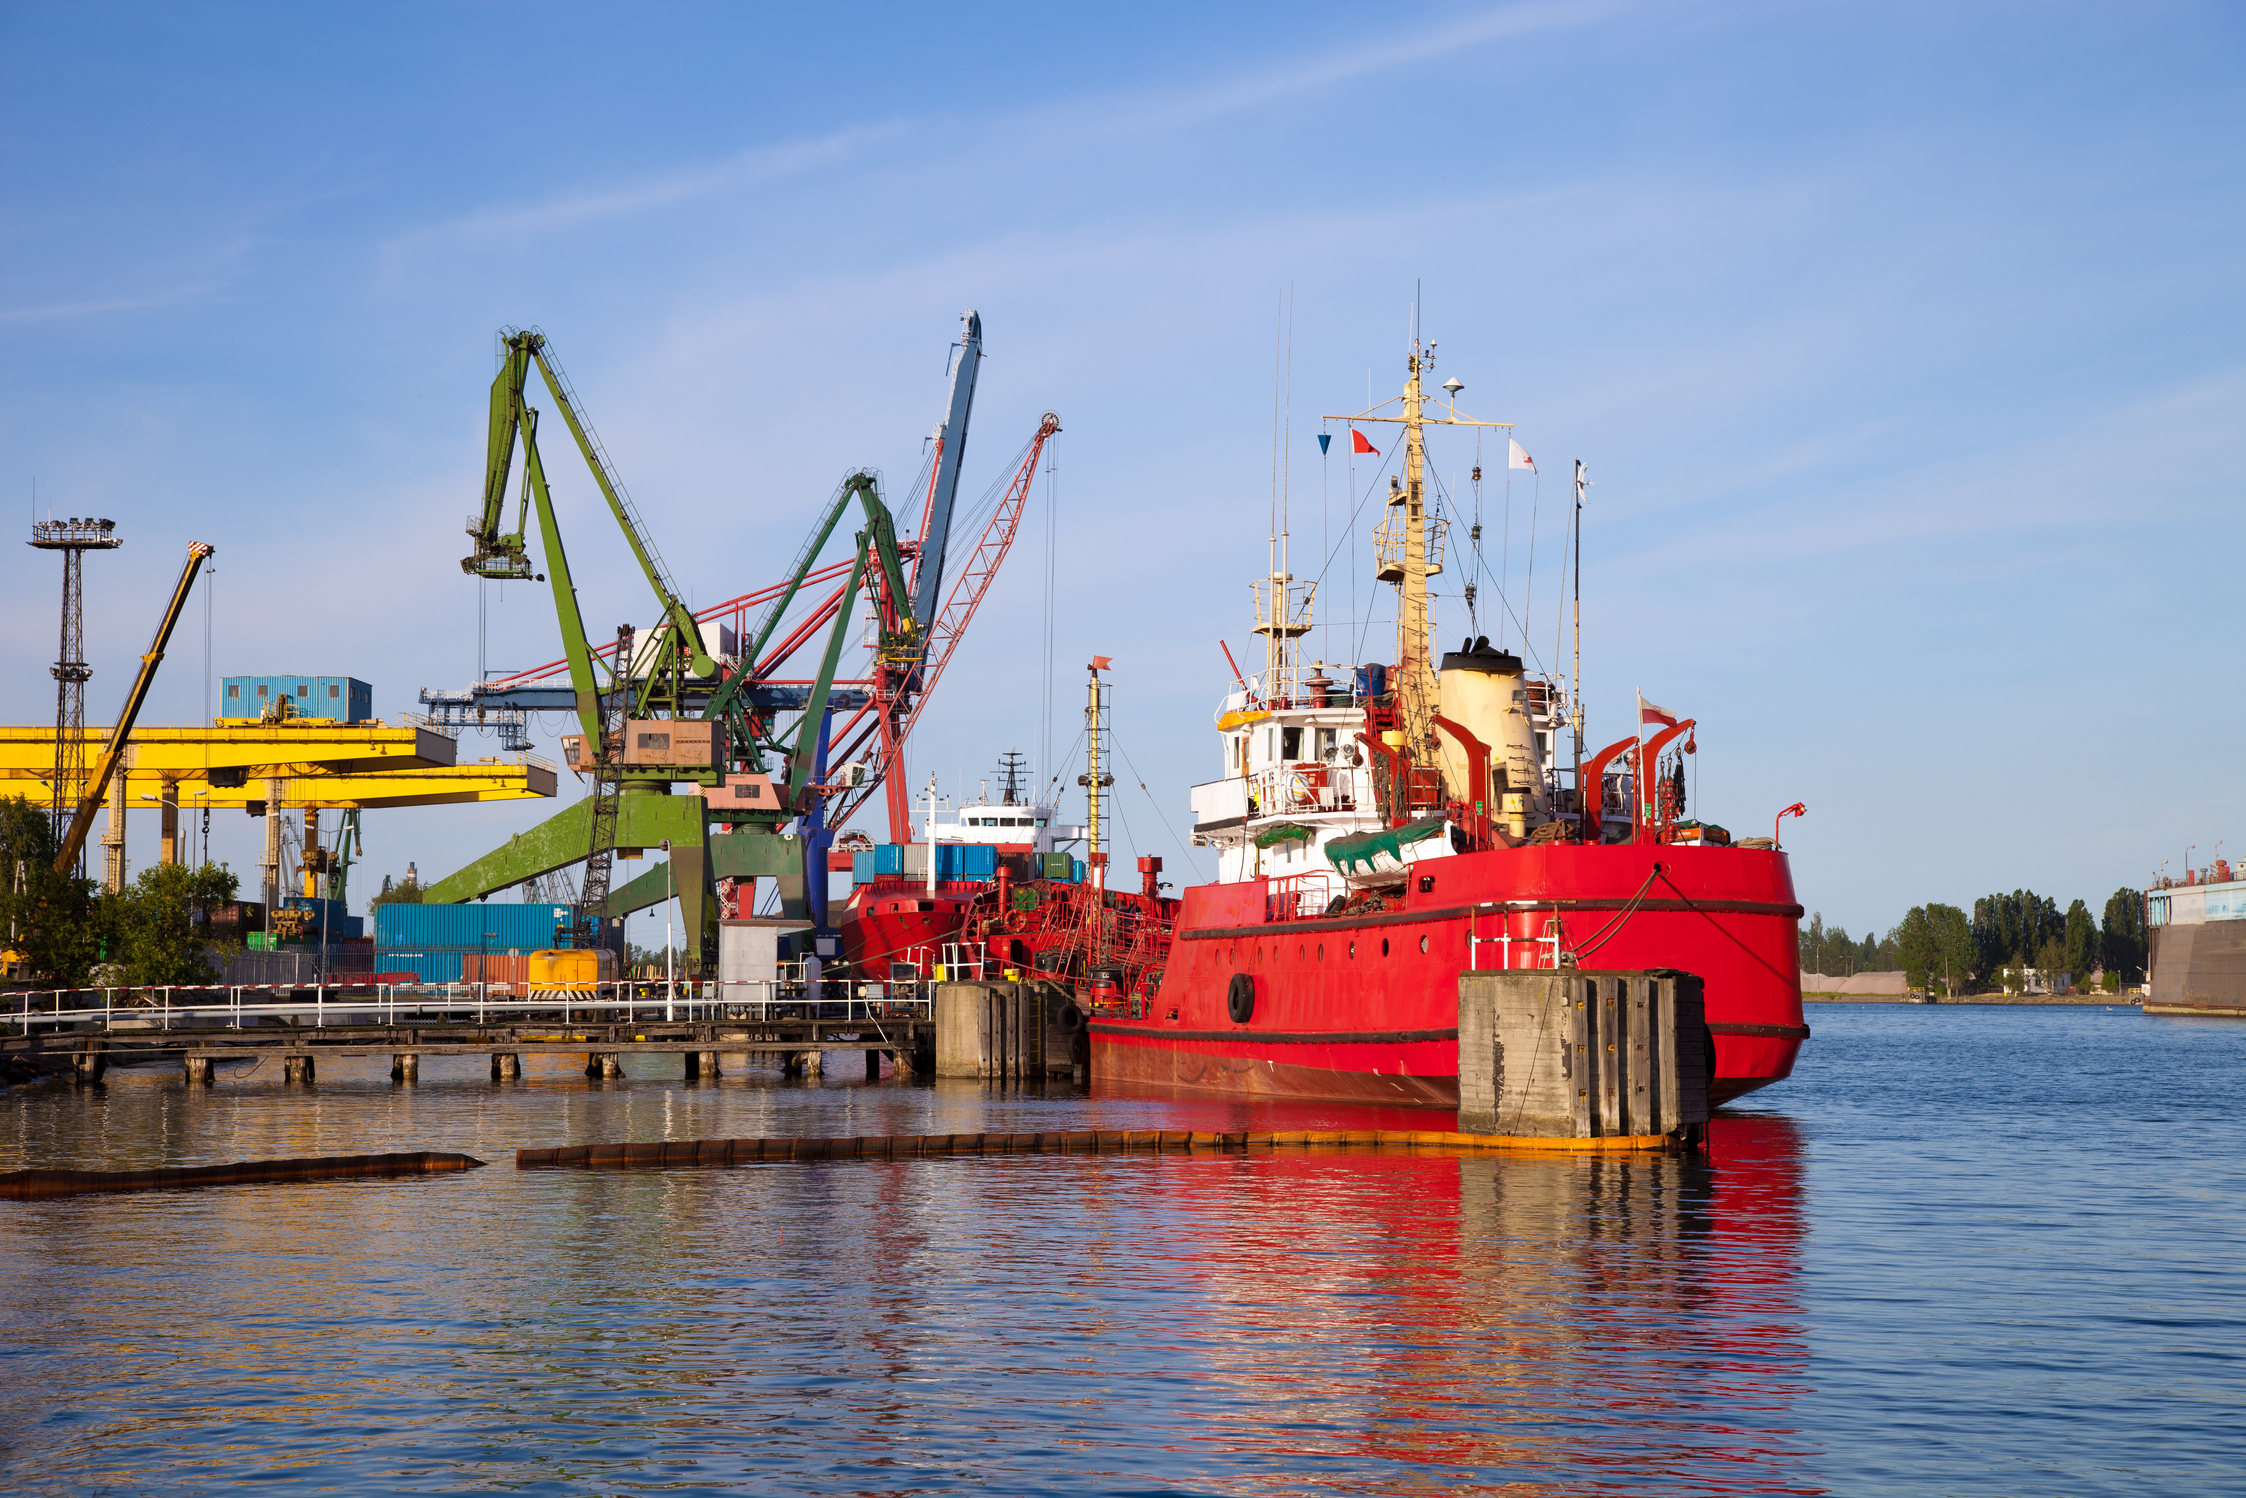 Cargo ship docked by the port